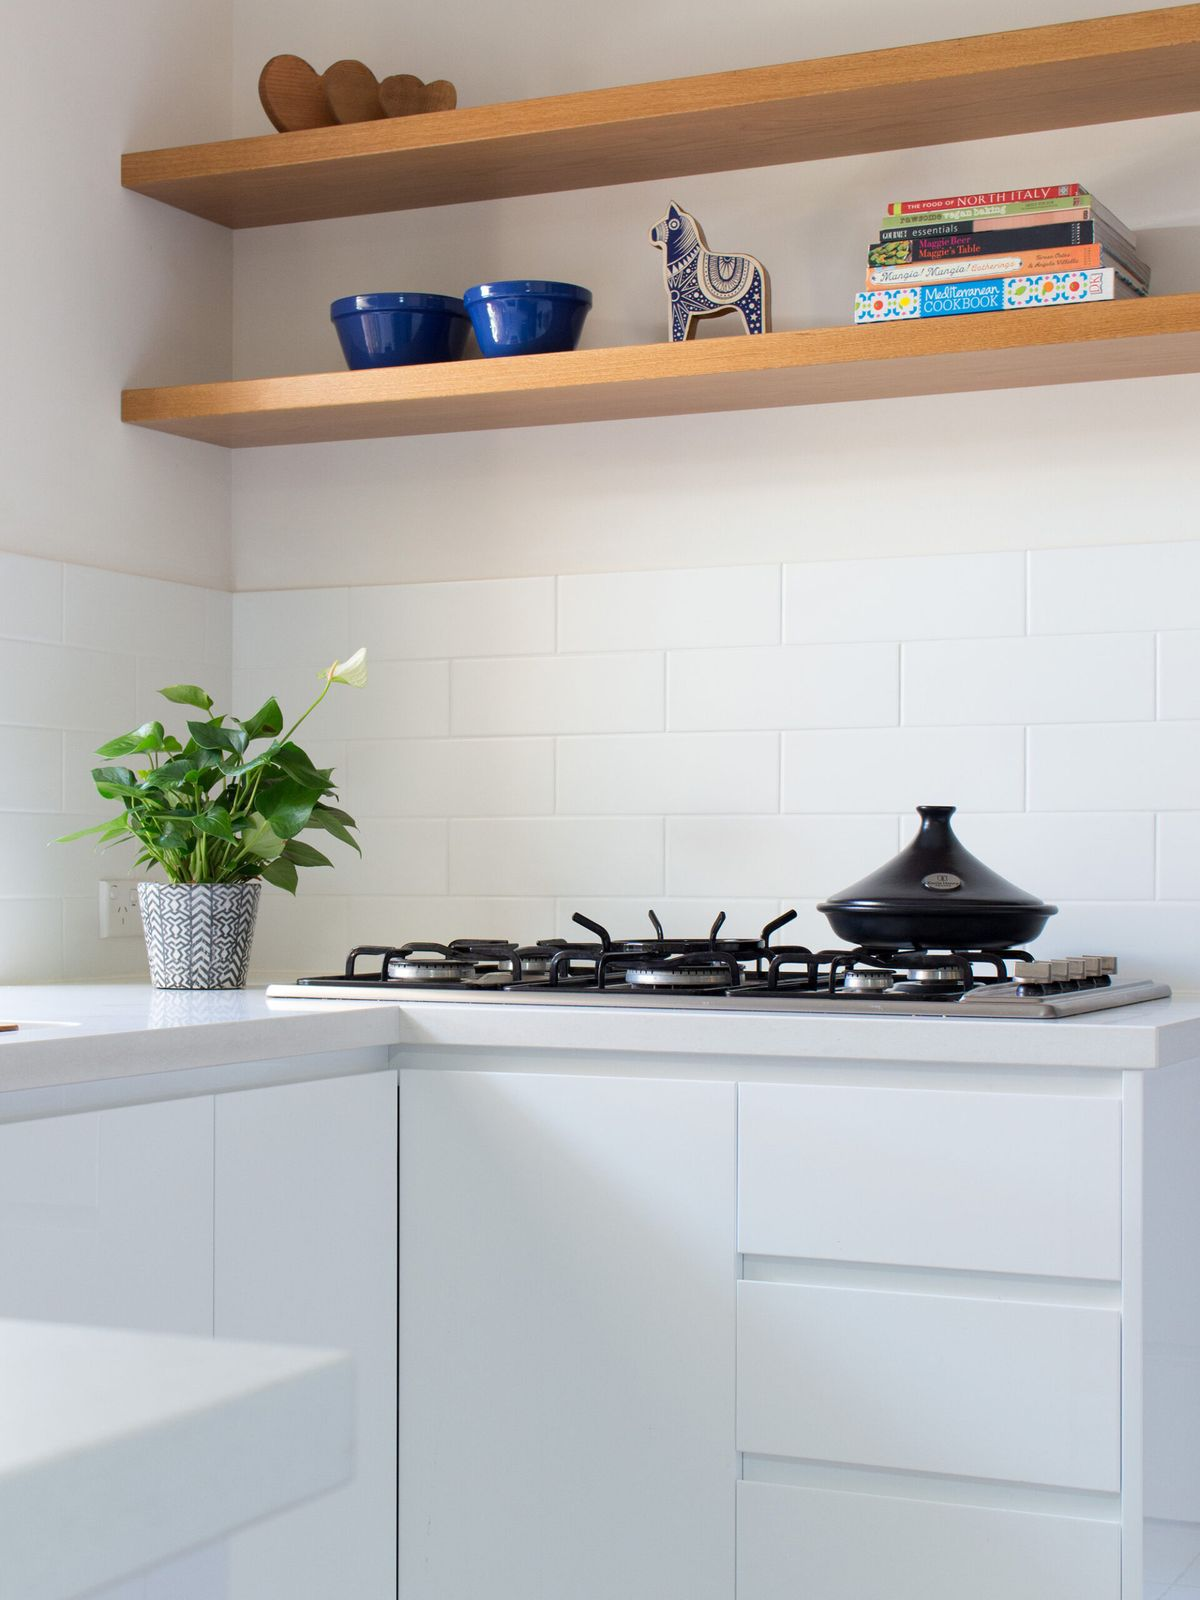 6 easy DIY kitchen ideas anyone can do - Clean up the tile grout